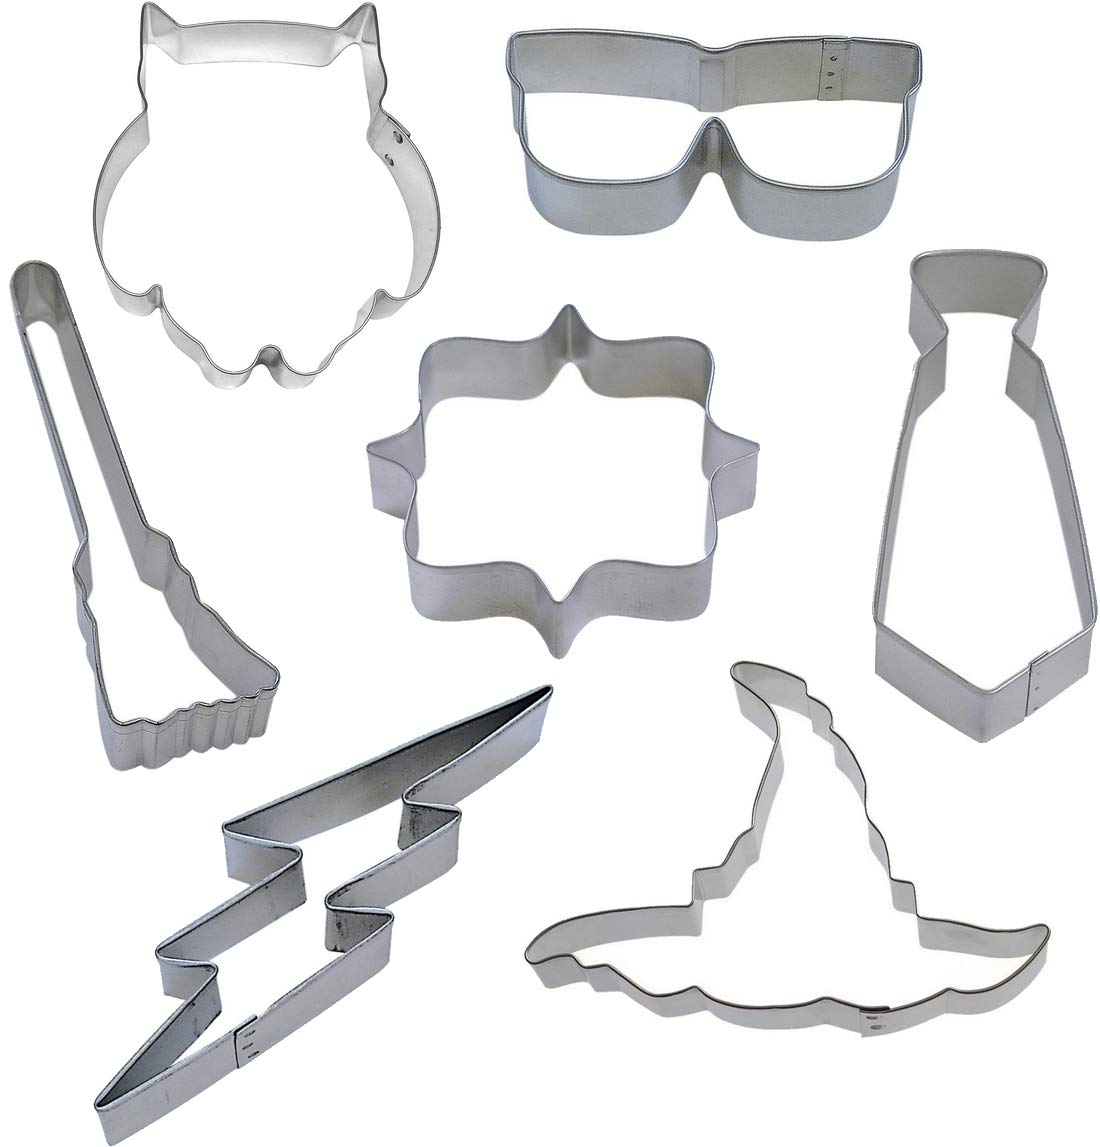 7 Piece Witch and Wizard Cookie Cutter Set by Harry potter (Image #1)